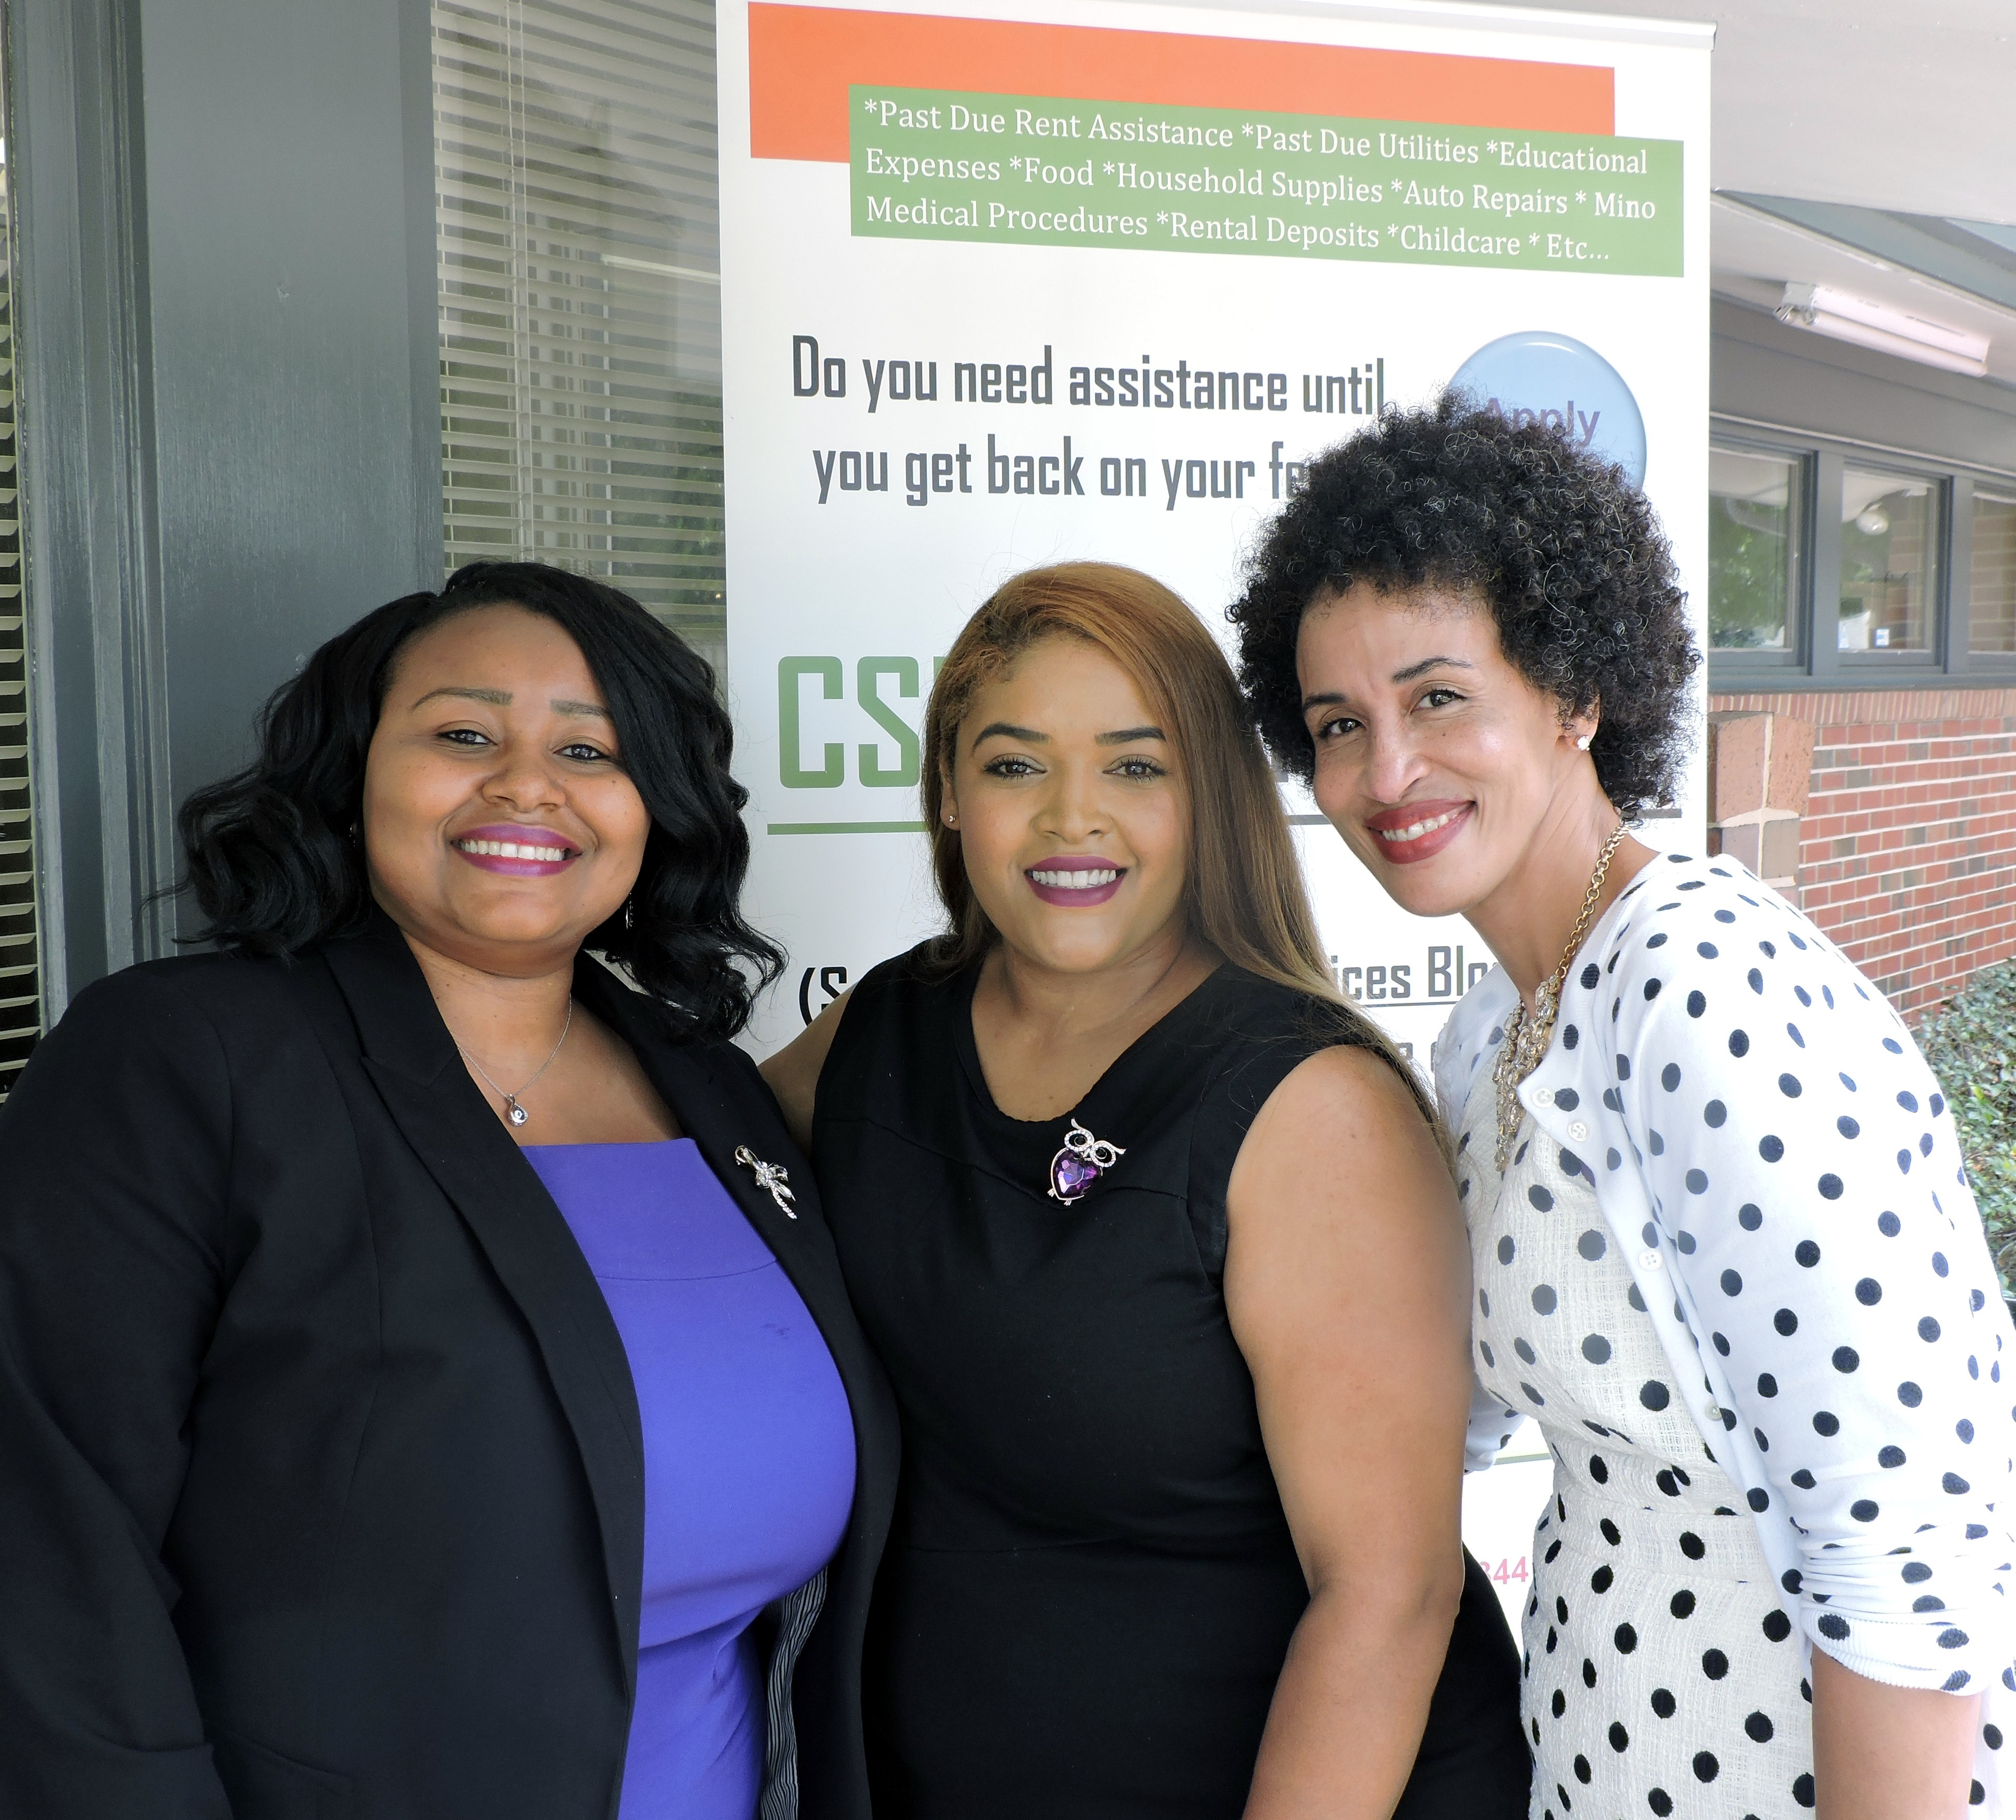 Natasha Elliott, CPCA Executive Director, Sheryl Andrews, CSBG Director, Allexus Porter, CSBG Assist